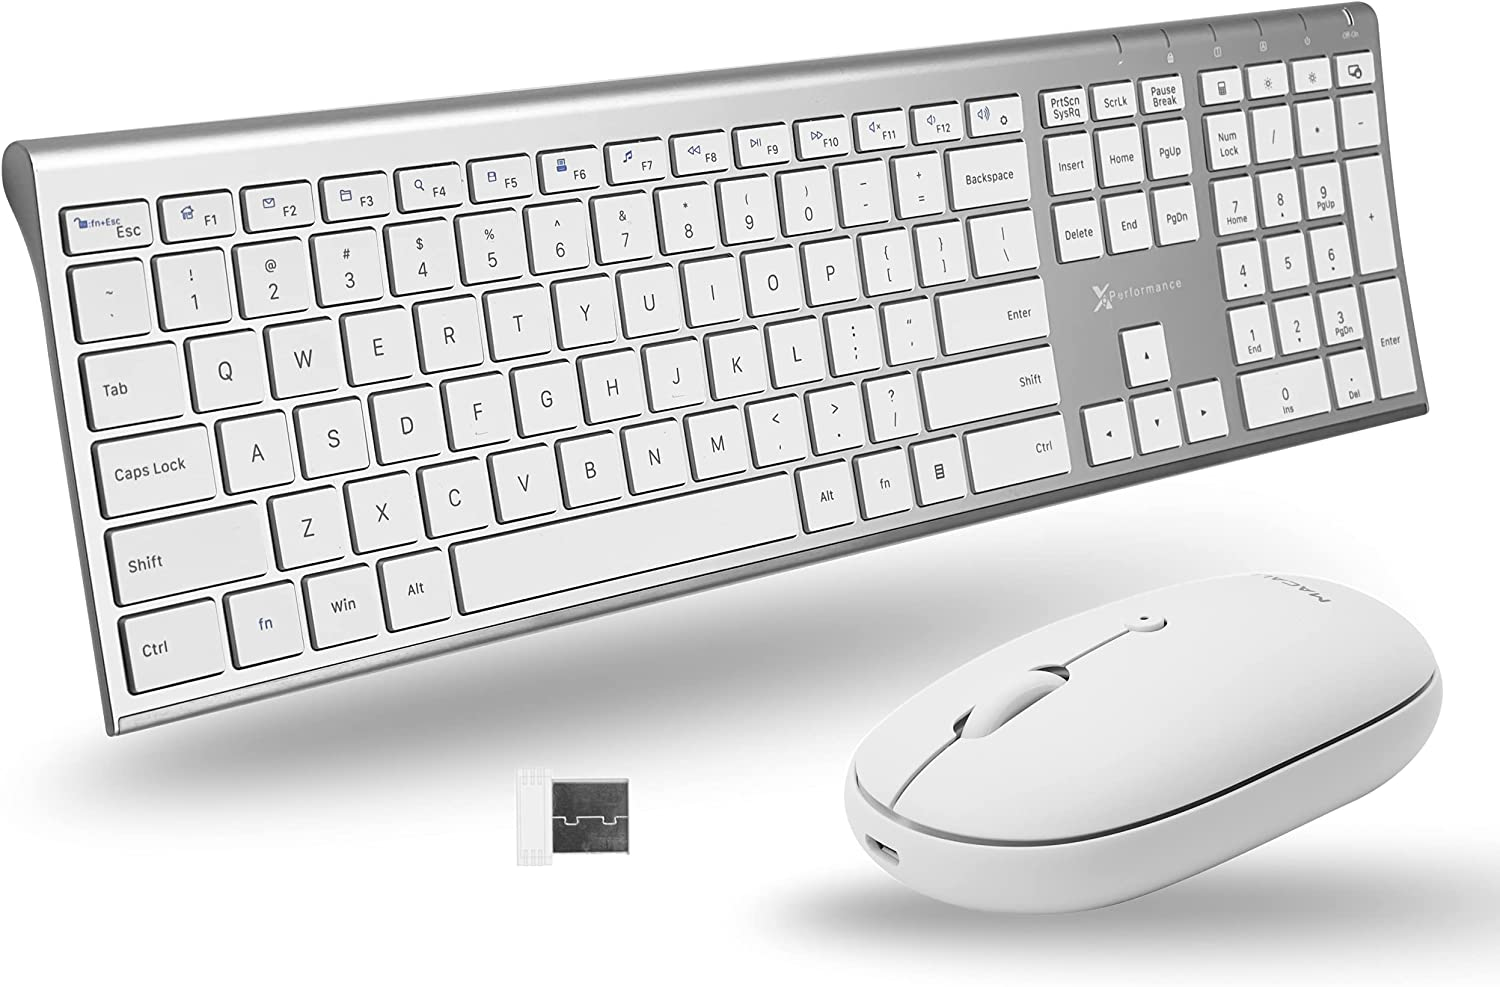 X9 Performance Rechargeable Wireless Keyboard and Mouse Combo for PC - Slim Keyboard with 110 Keys and Aluminum Finish and White Quiet Click Mouse - Sophisticated 2.4Ghz Wireless Keyboard Mouse Combo